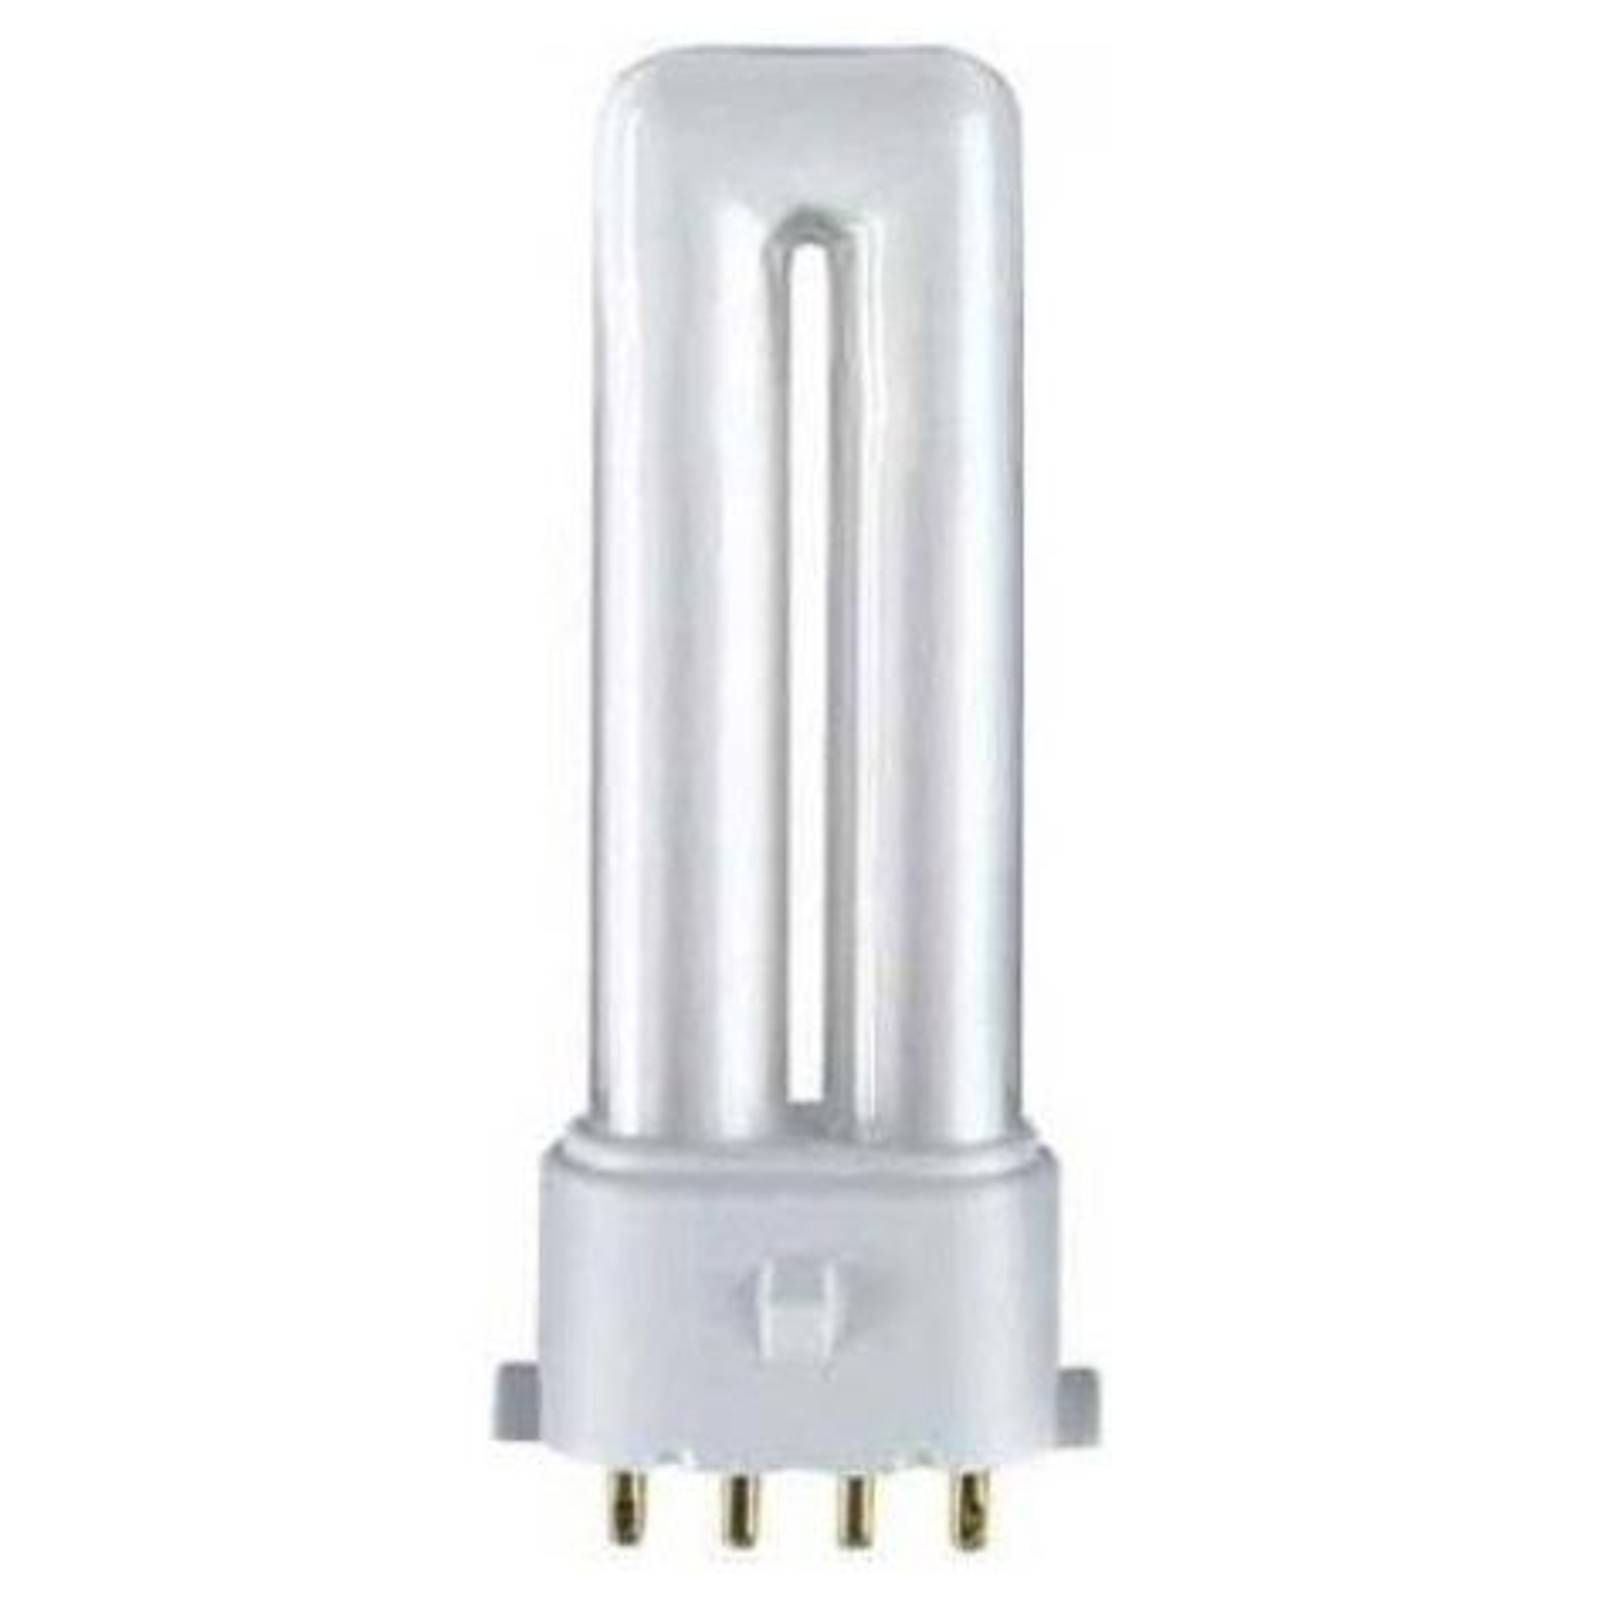 Lighting Fluorescent Neon Tubes Find Philips Products Online At Light Bulbs Diagram Lamp Eurolite 23w Has A 2g7 Compact Bulb Master4pin From Found Lights